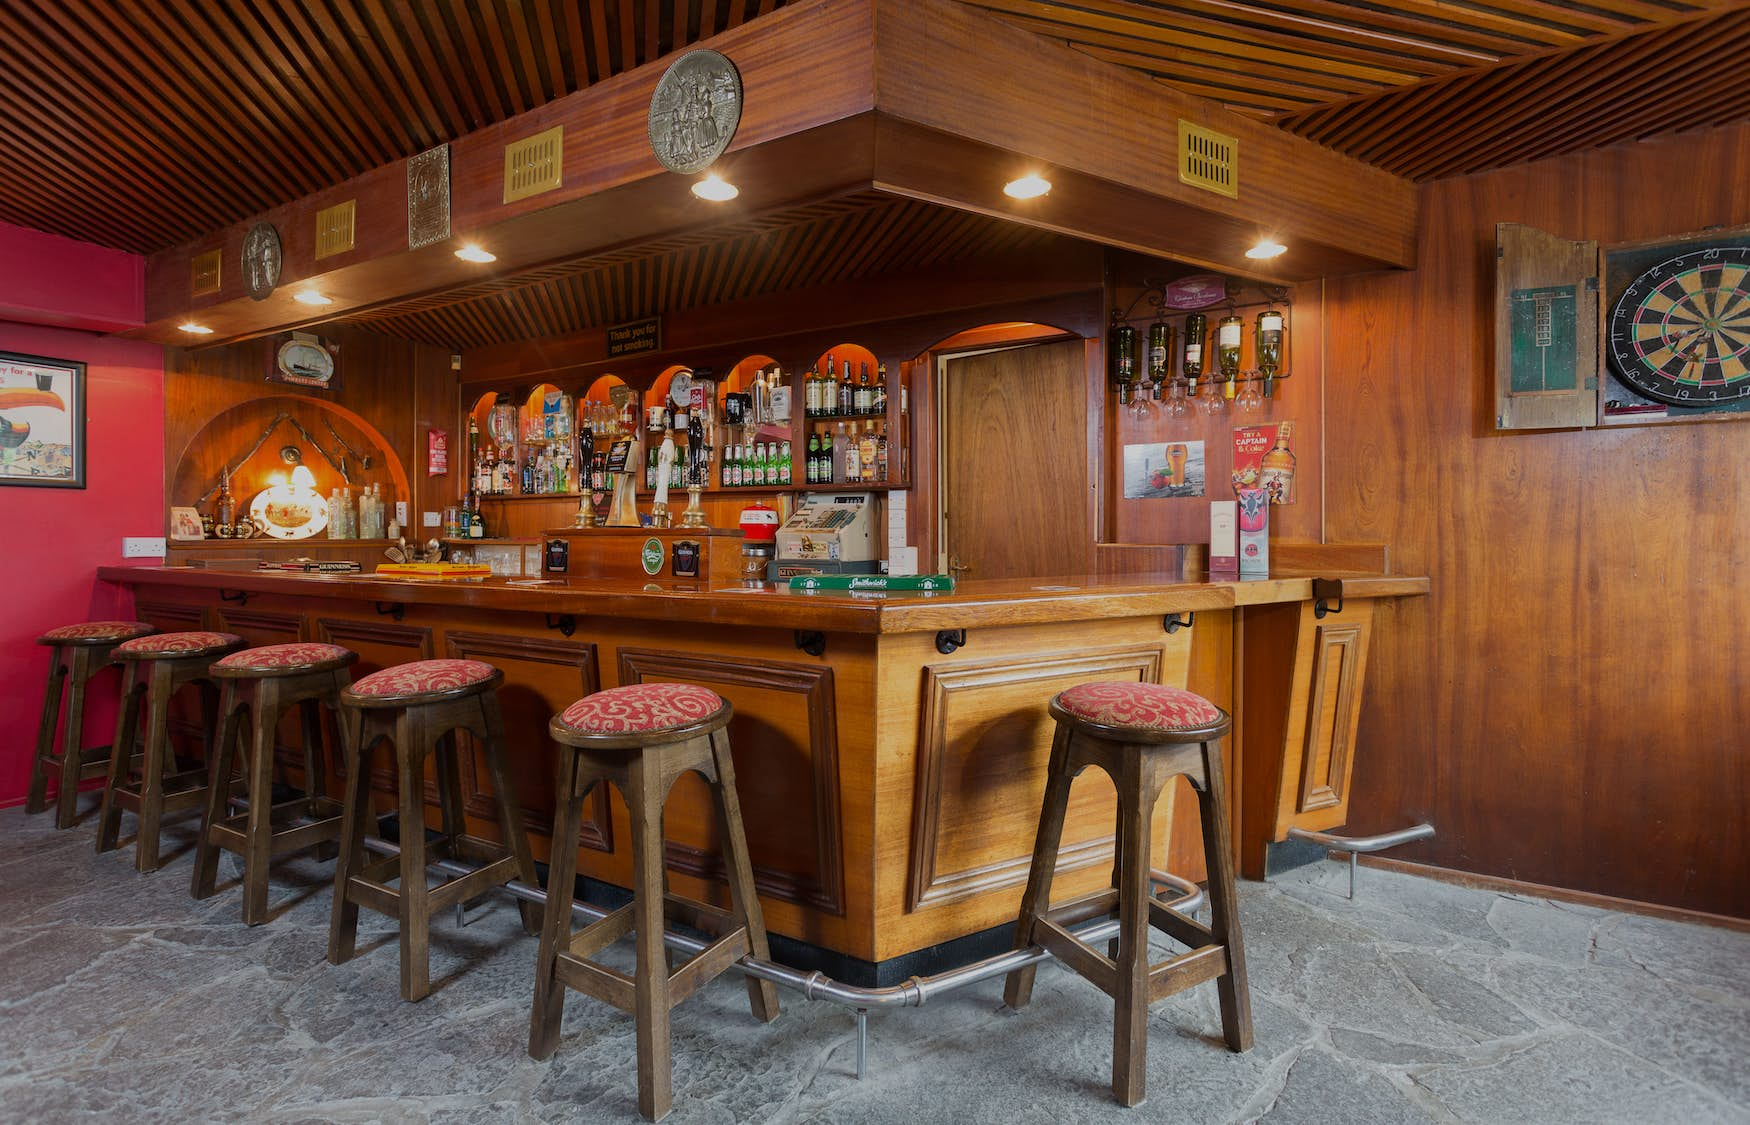 Rent your own pub for the weekend and never miss last orders